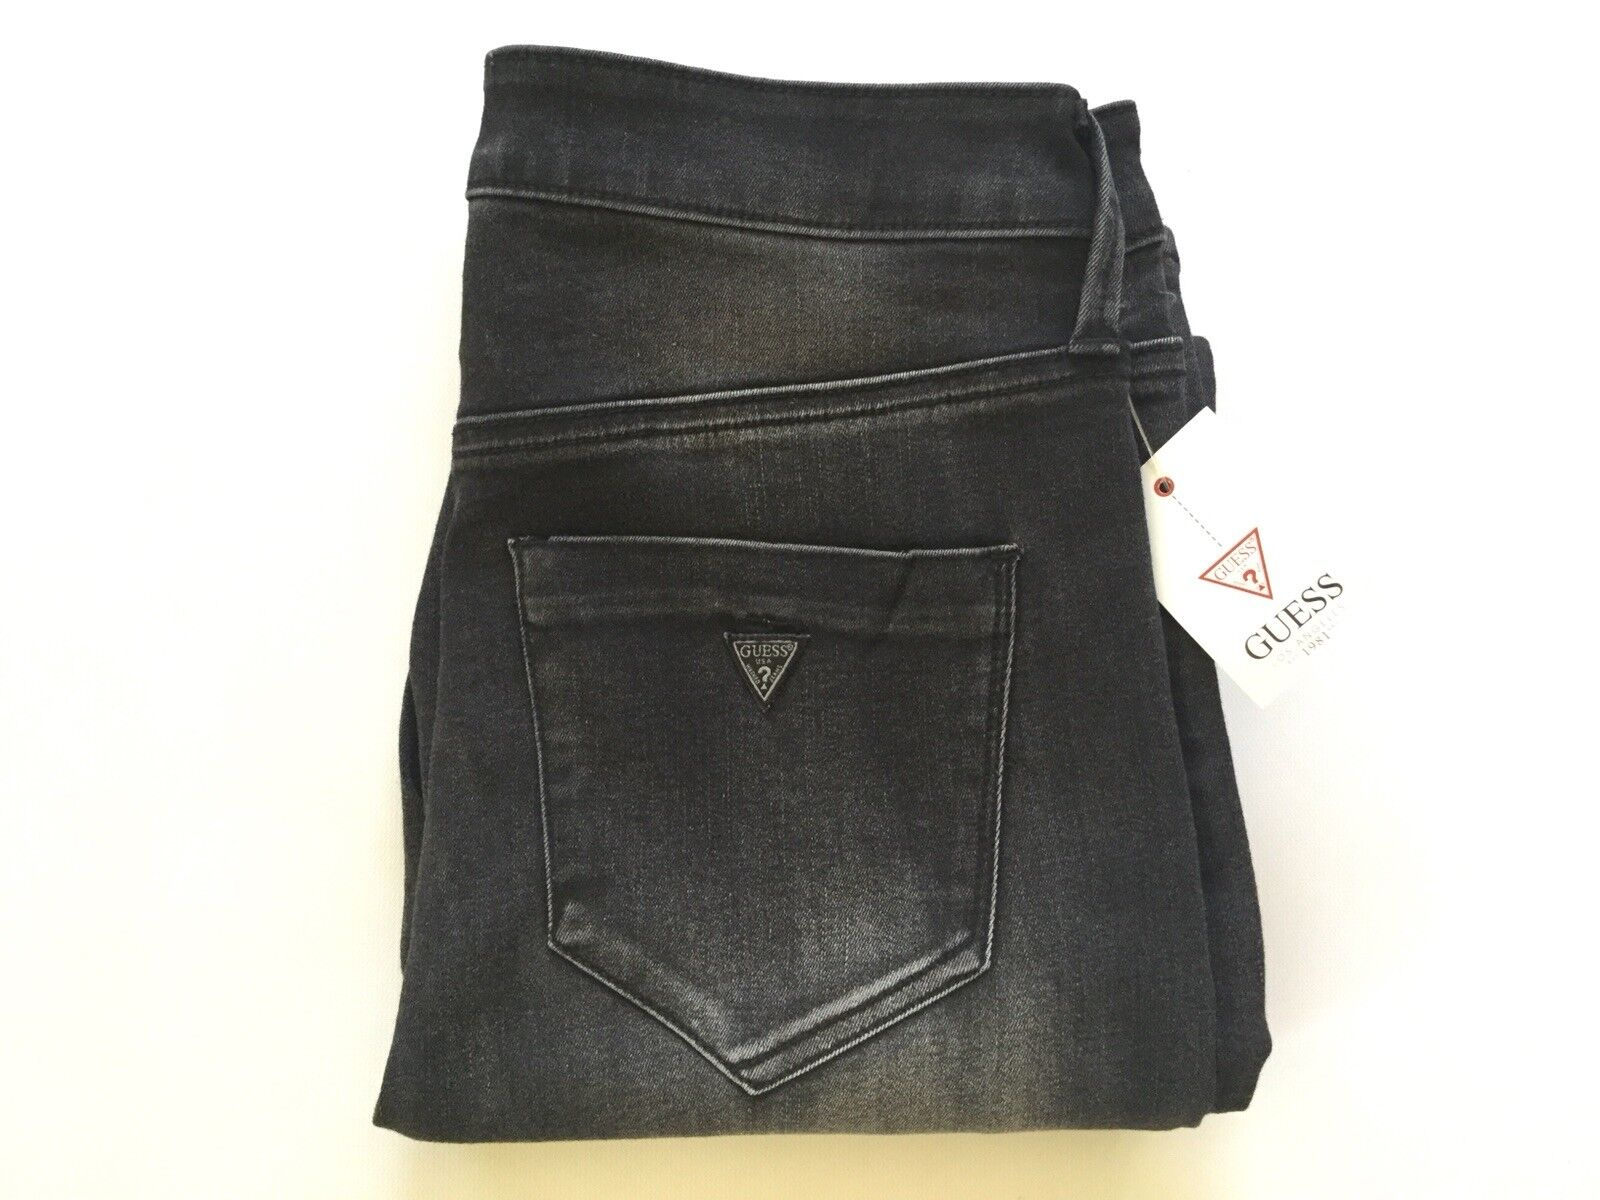 Guess Women's High Rise Skinny Jeans With Tuxedo Stripe Size 26